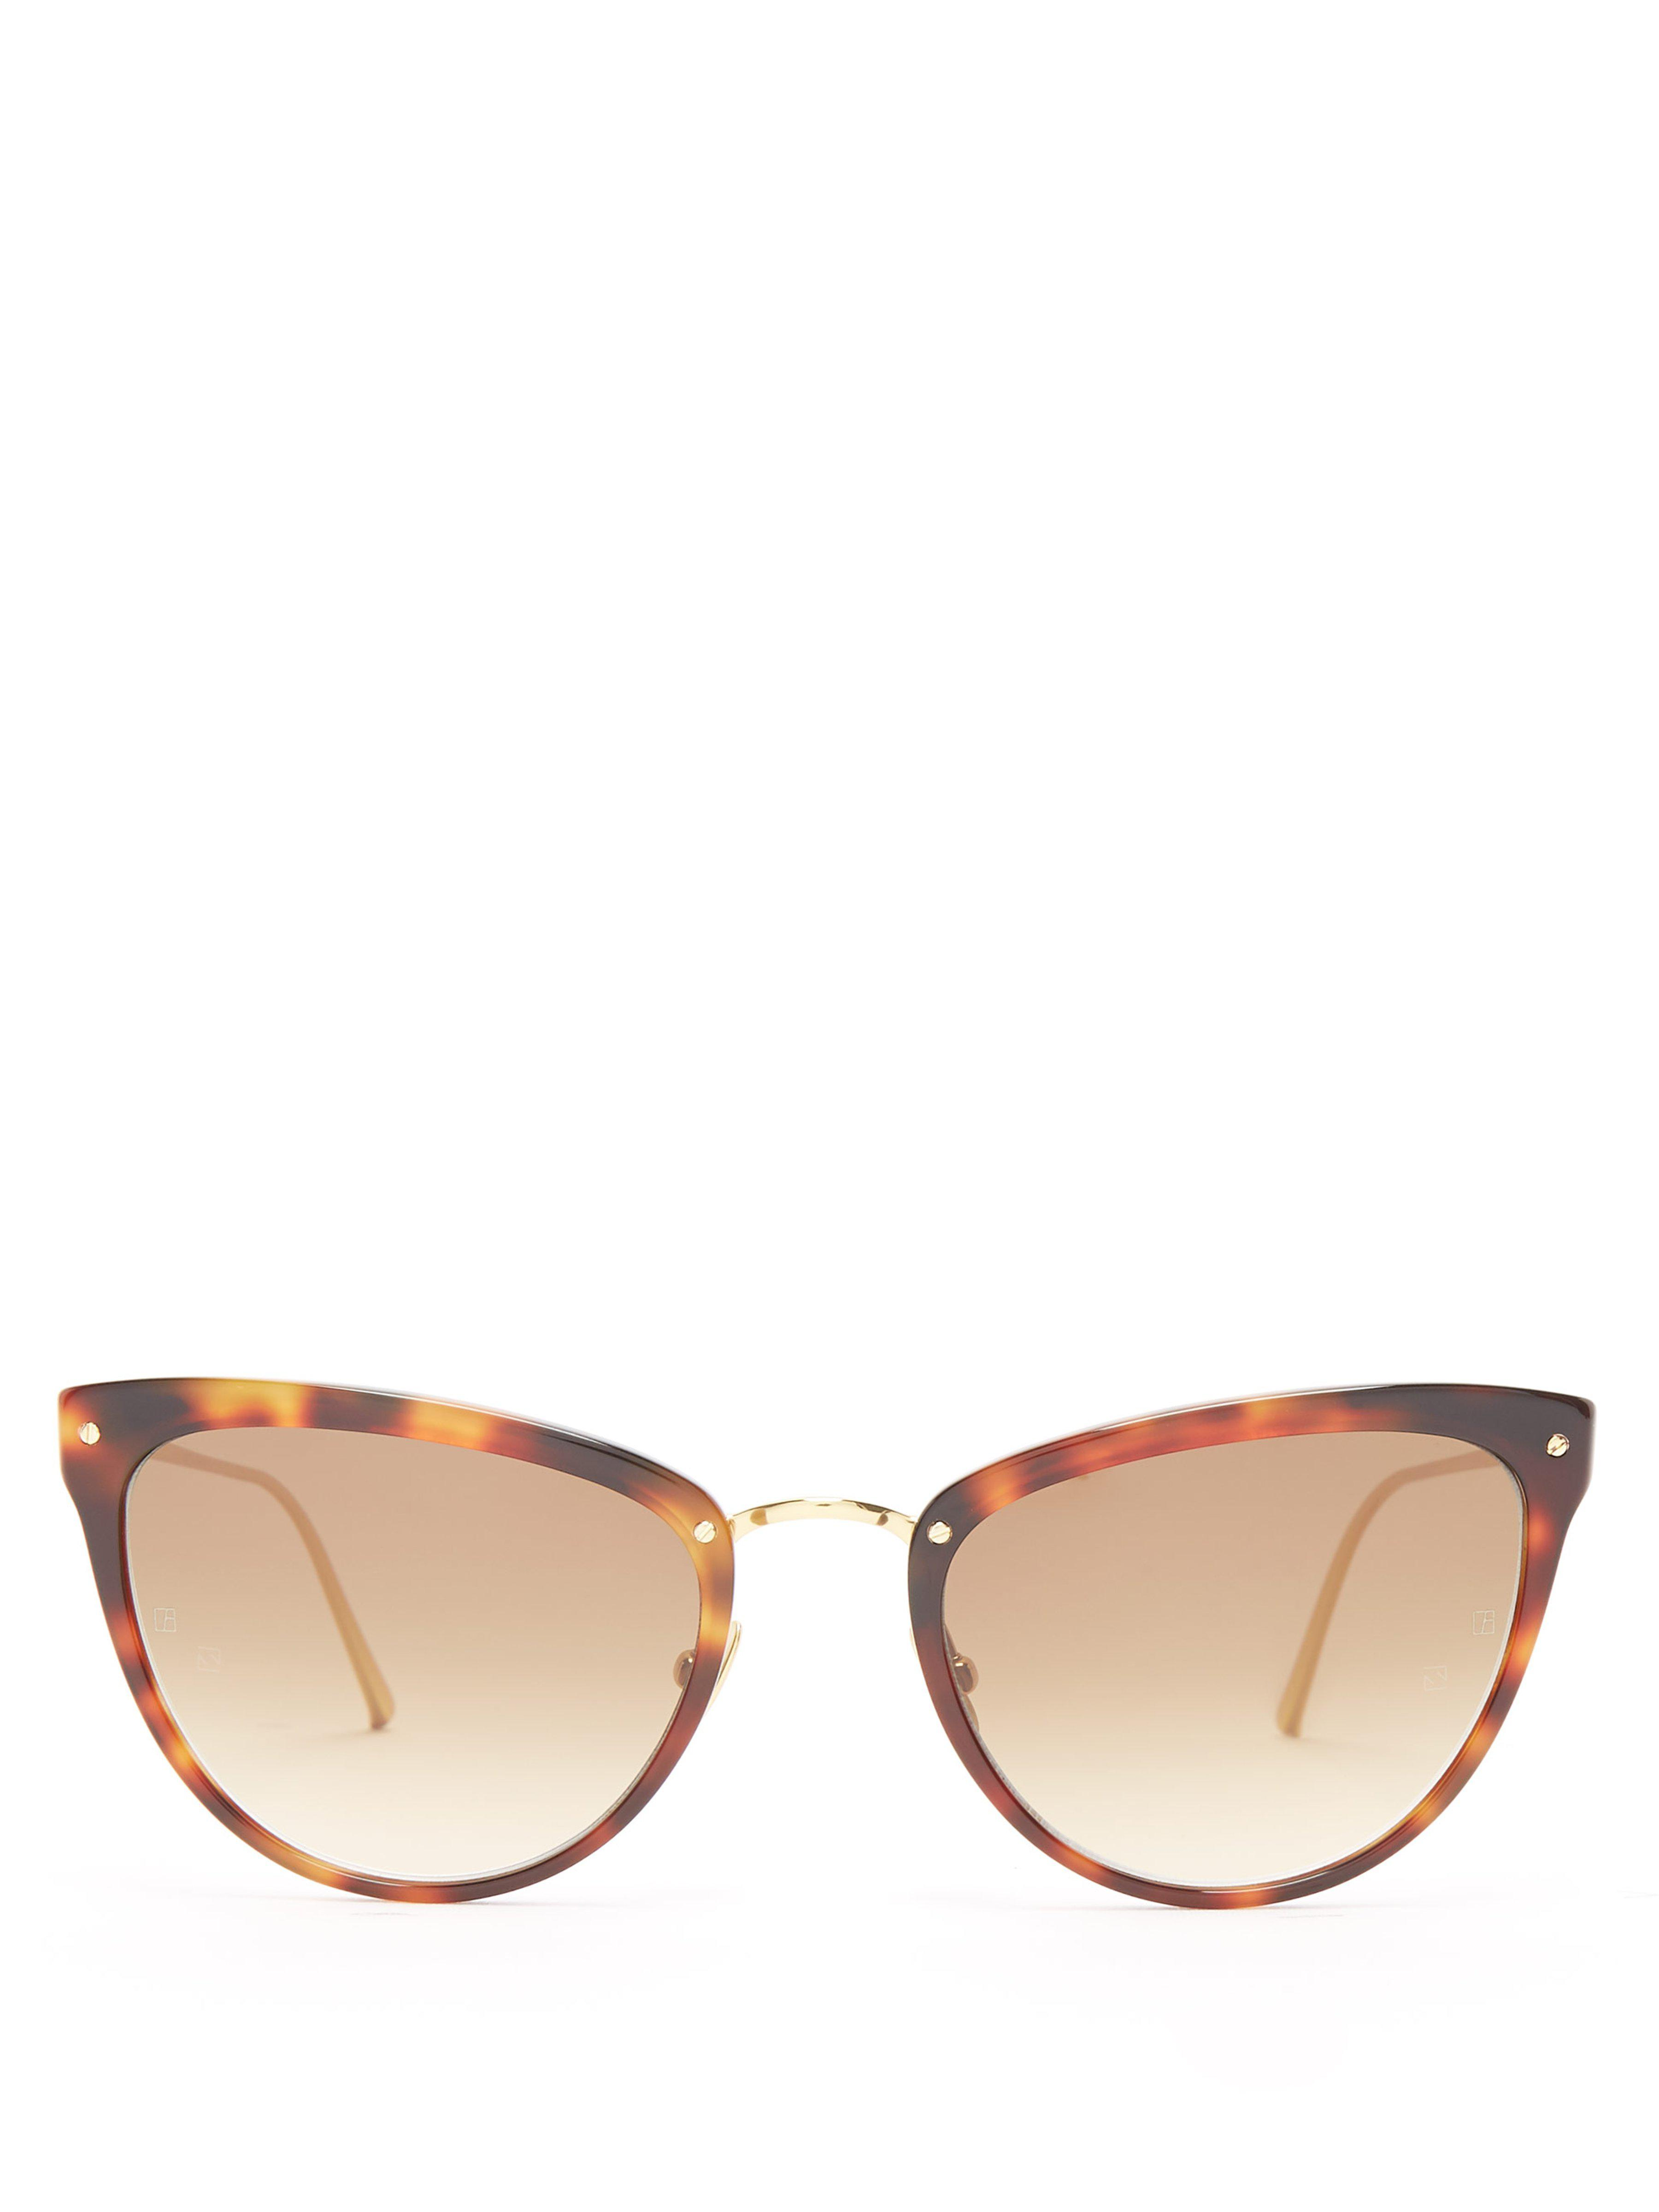 4552675d551f Linda Farrow. Women s Cat Eye Gold Plated Sunglasses